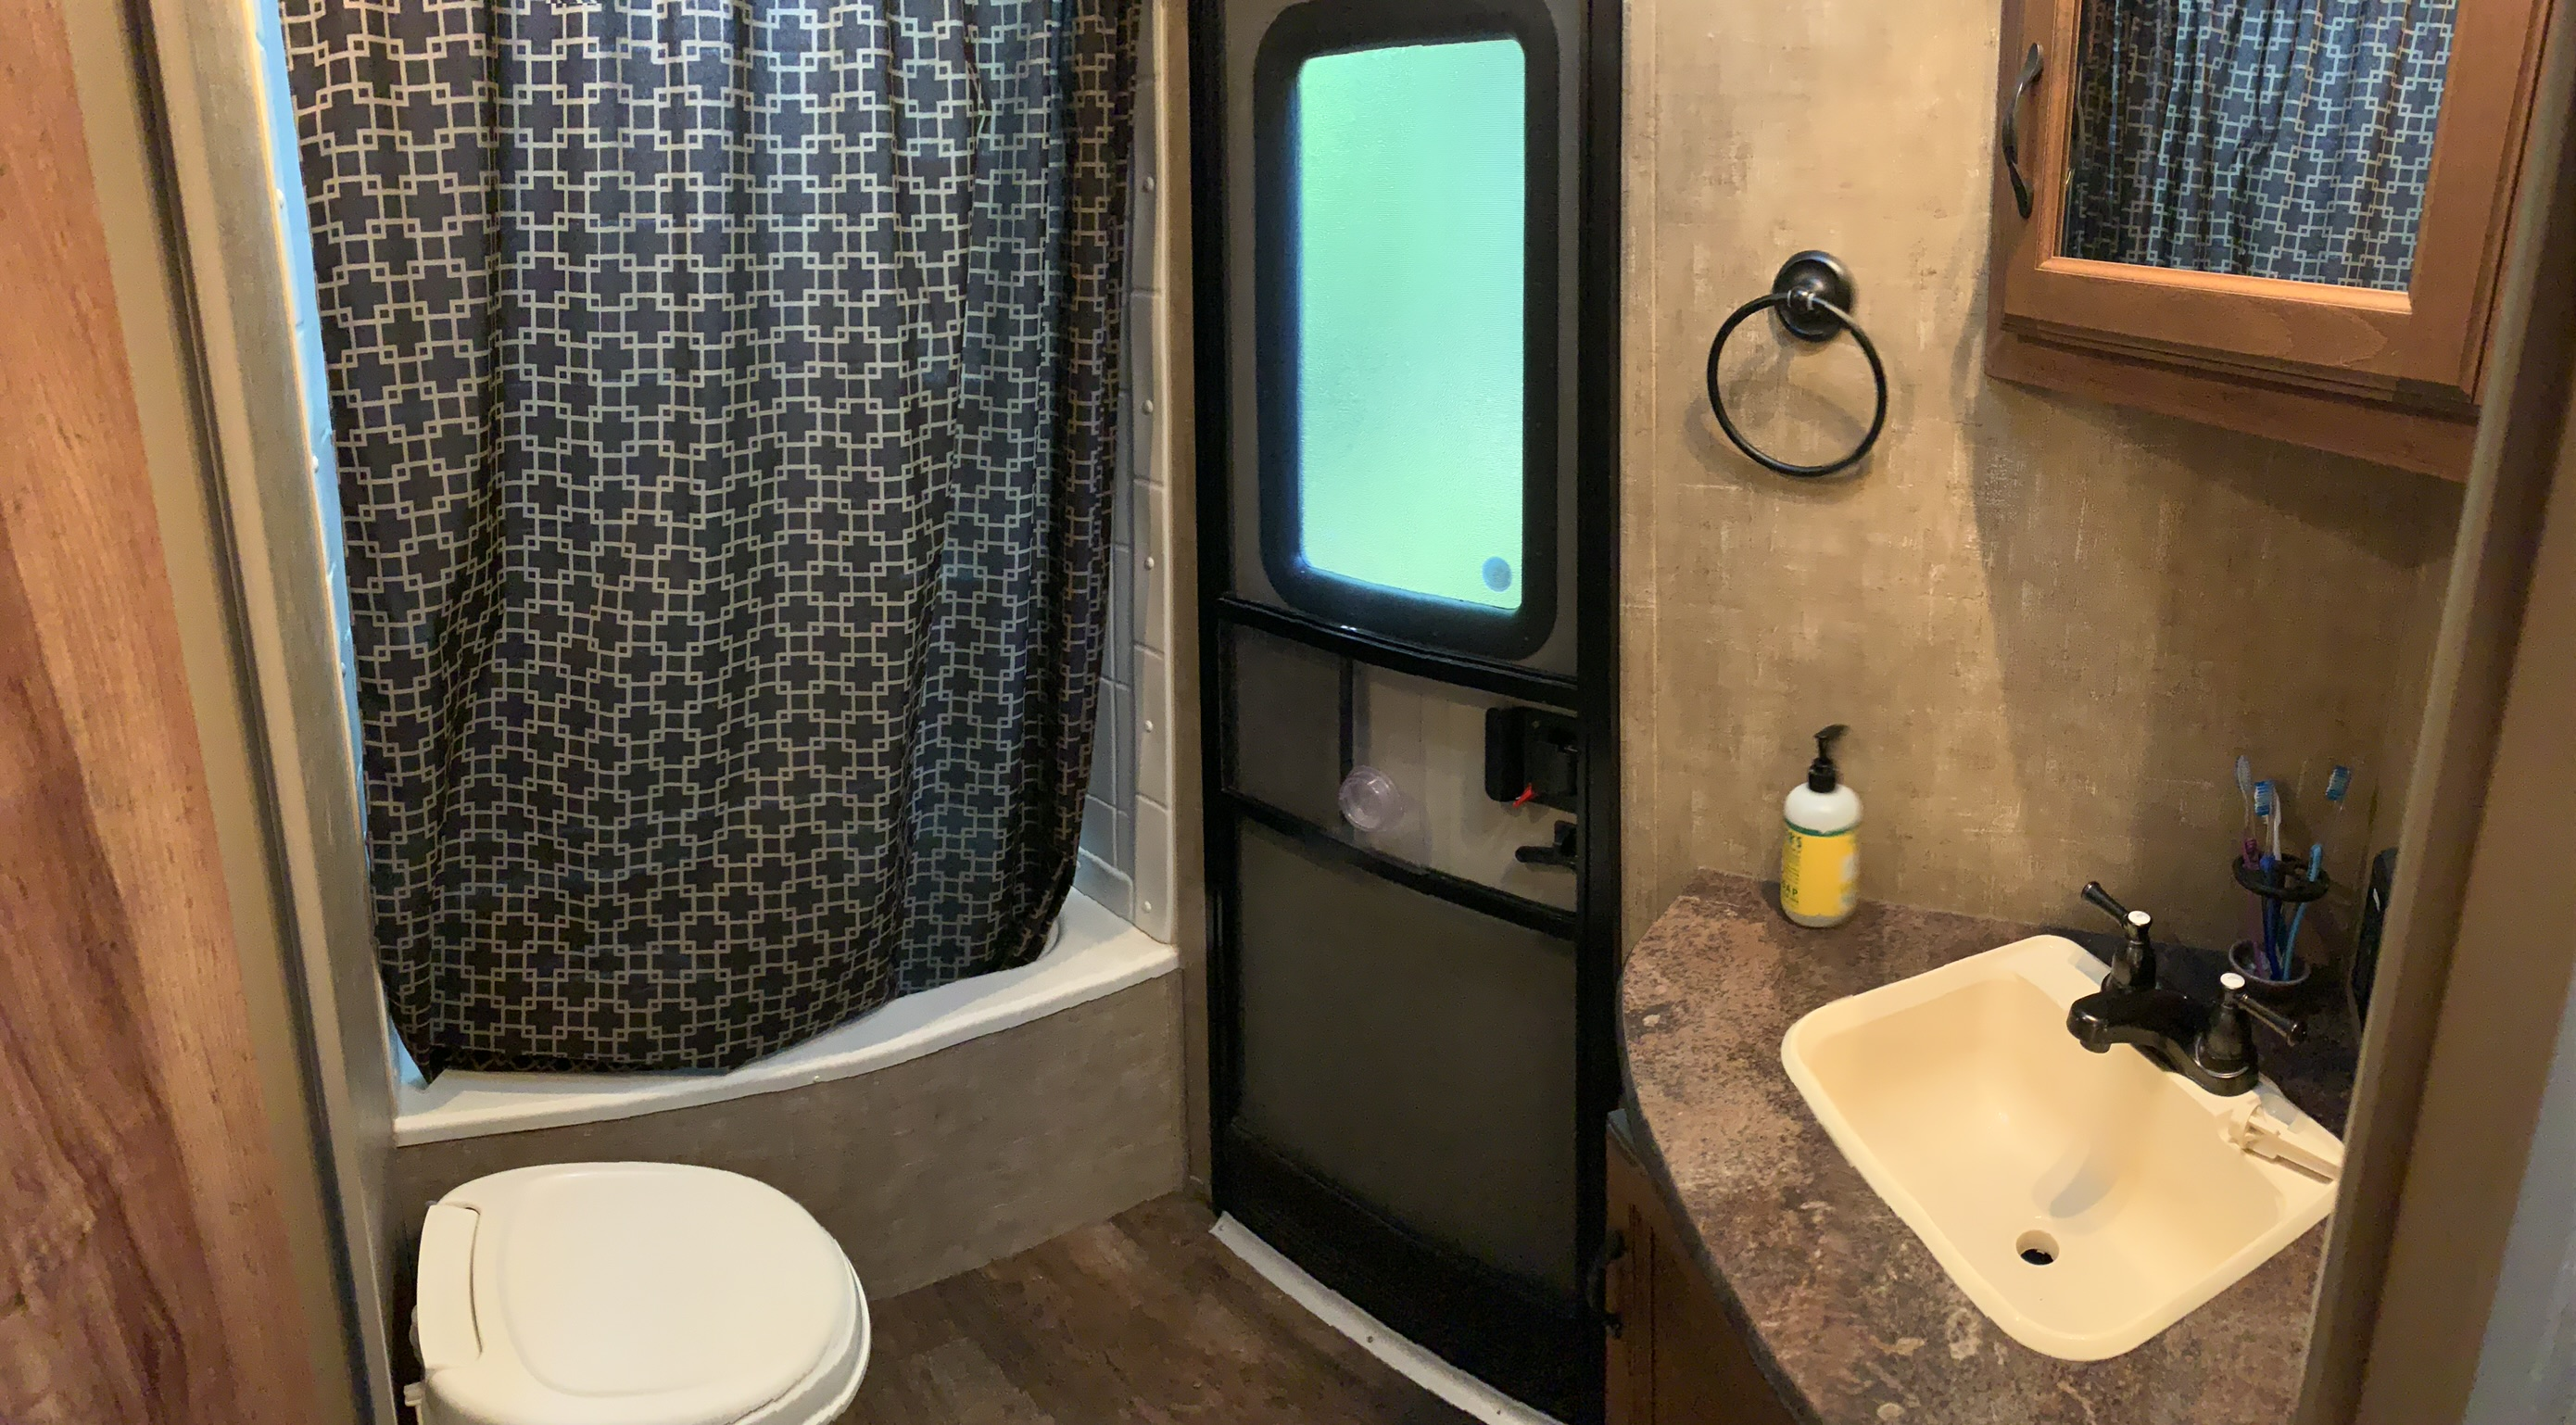 Plenty of space to shower and refresh after an enjoyable day of camping. Exterior entrance to the bathroom makes camping with kids or friends sleeping in a tent easy!. K-Z Manufacturing Spree 2015